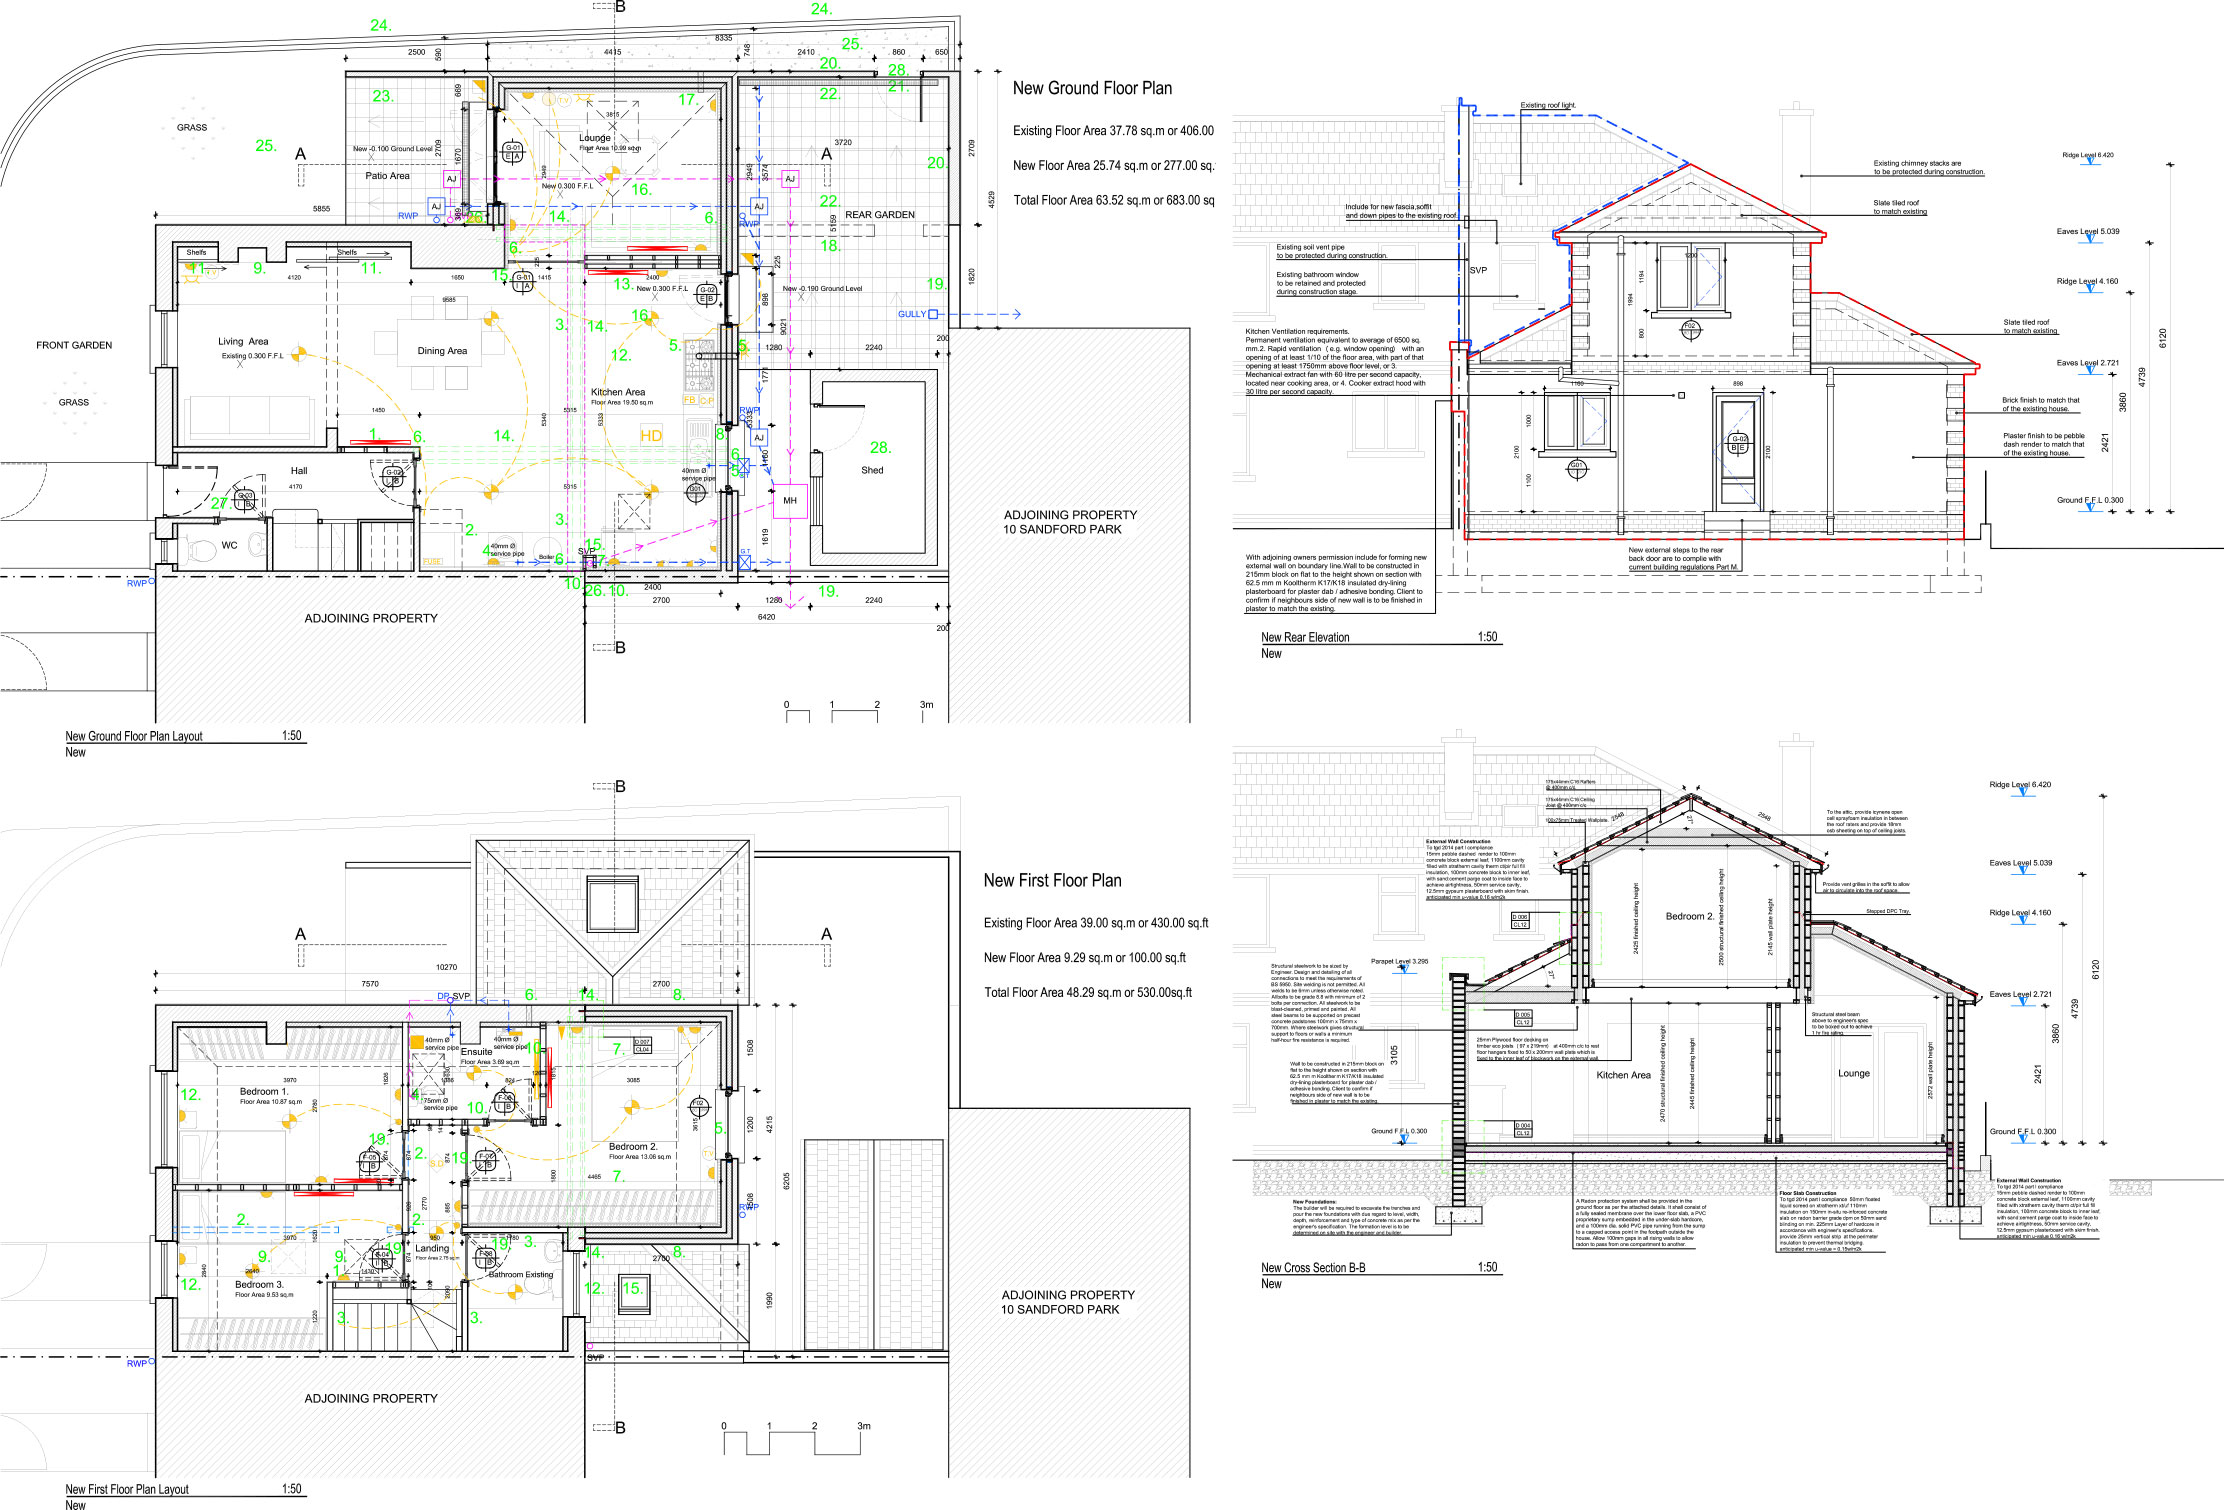 2d construction drawings examples complete archi services for Construction drawing